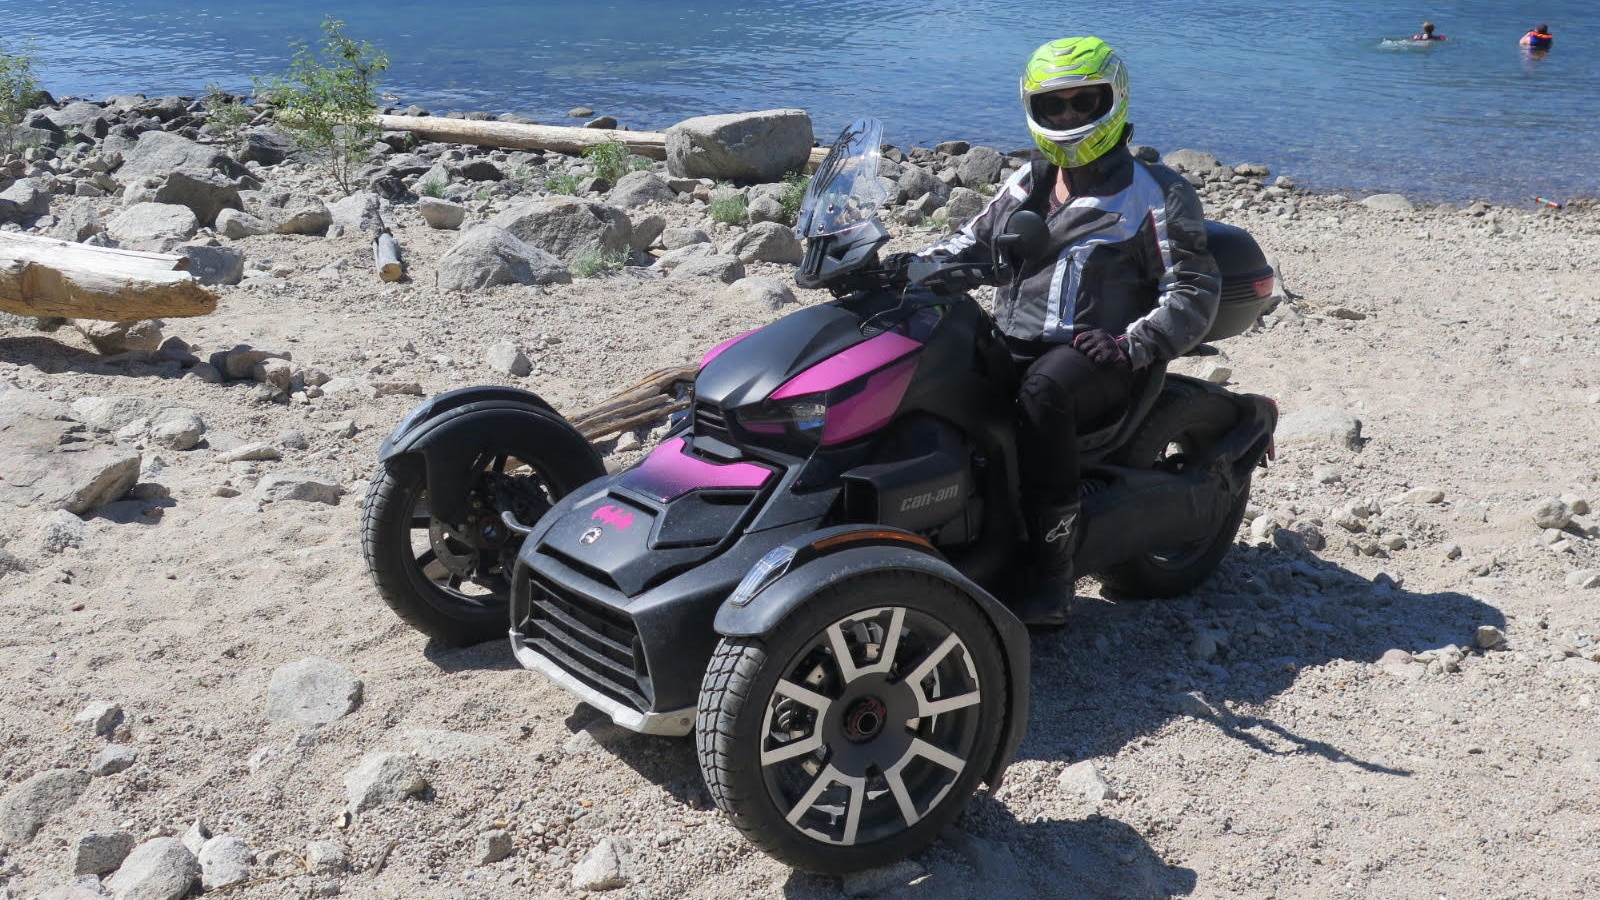 Kare Gray sitting on her Can-Am Ryker